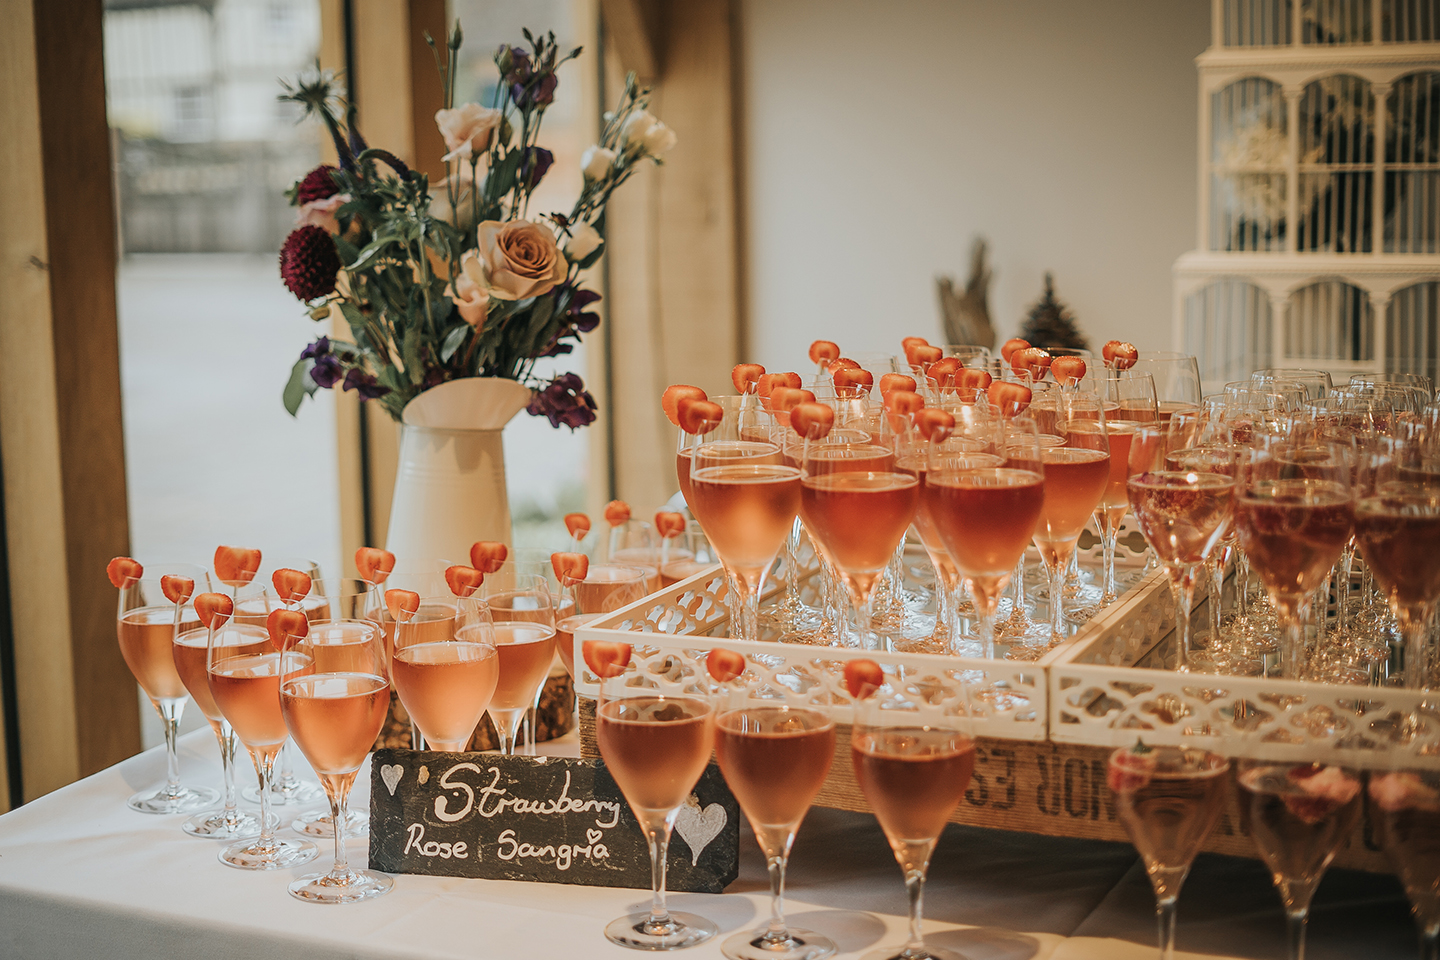 Serve refreshing wedding drinks during your reception at Bassmead Manor Barns